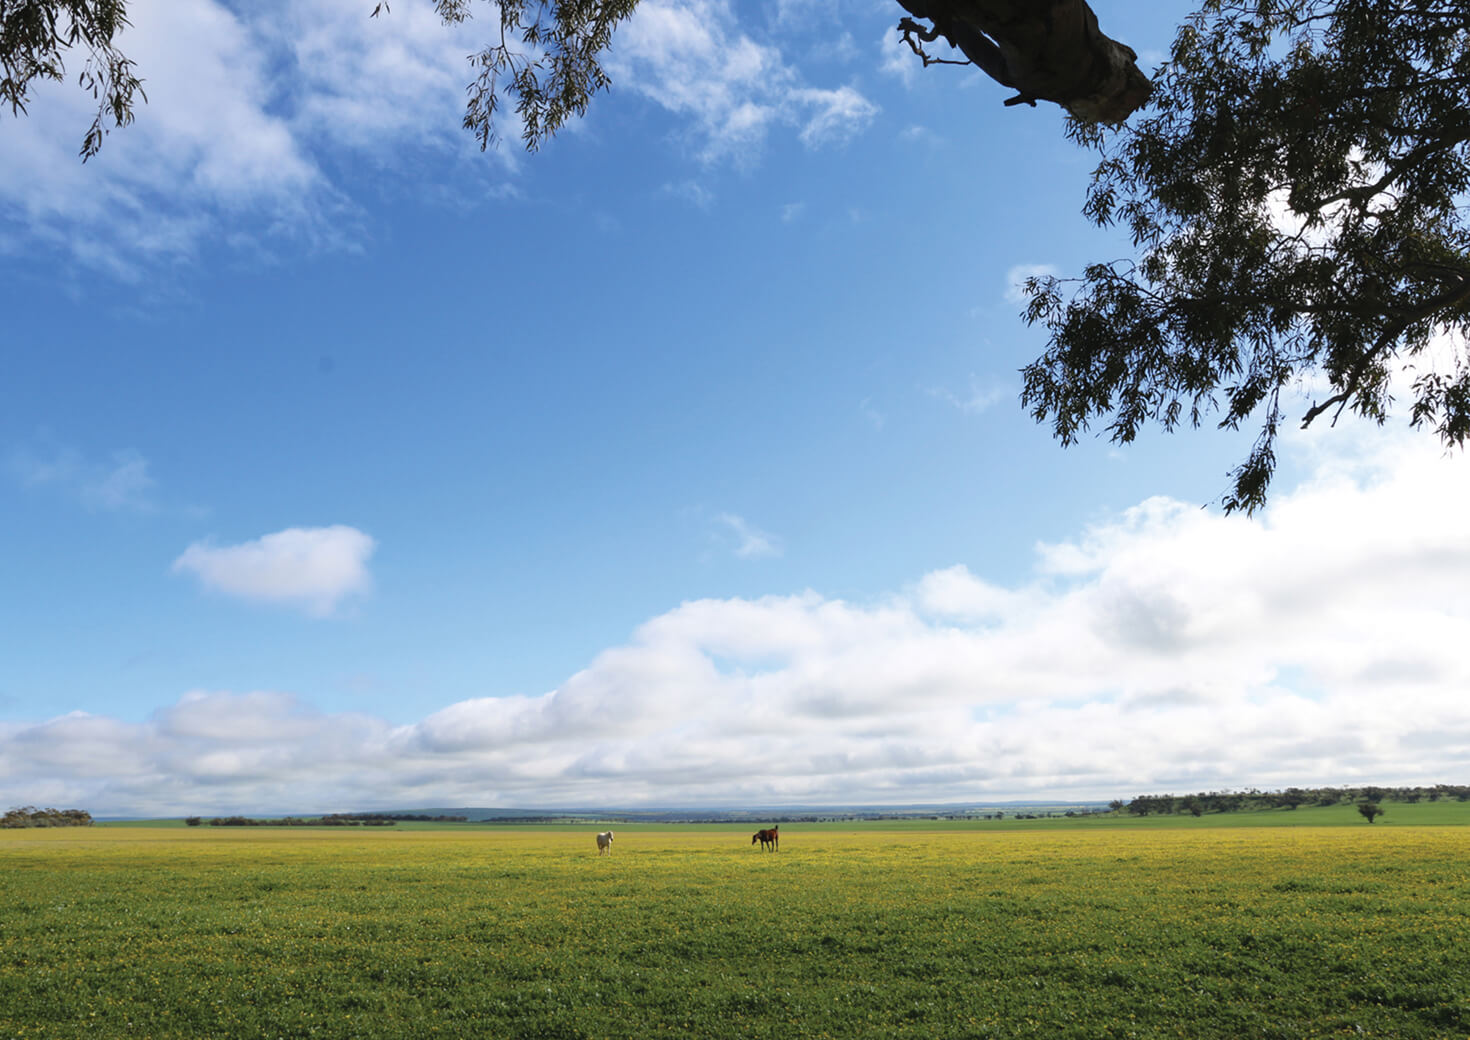 Lush Mingenew field with two horses grazing in distance